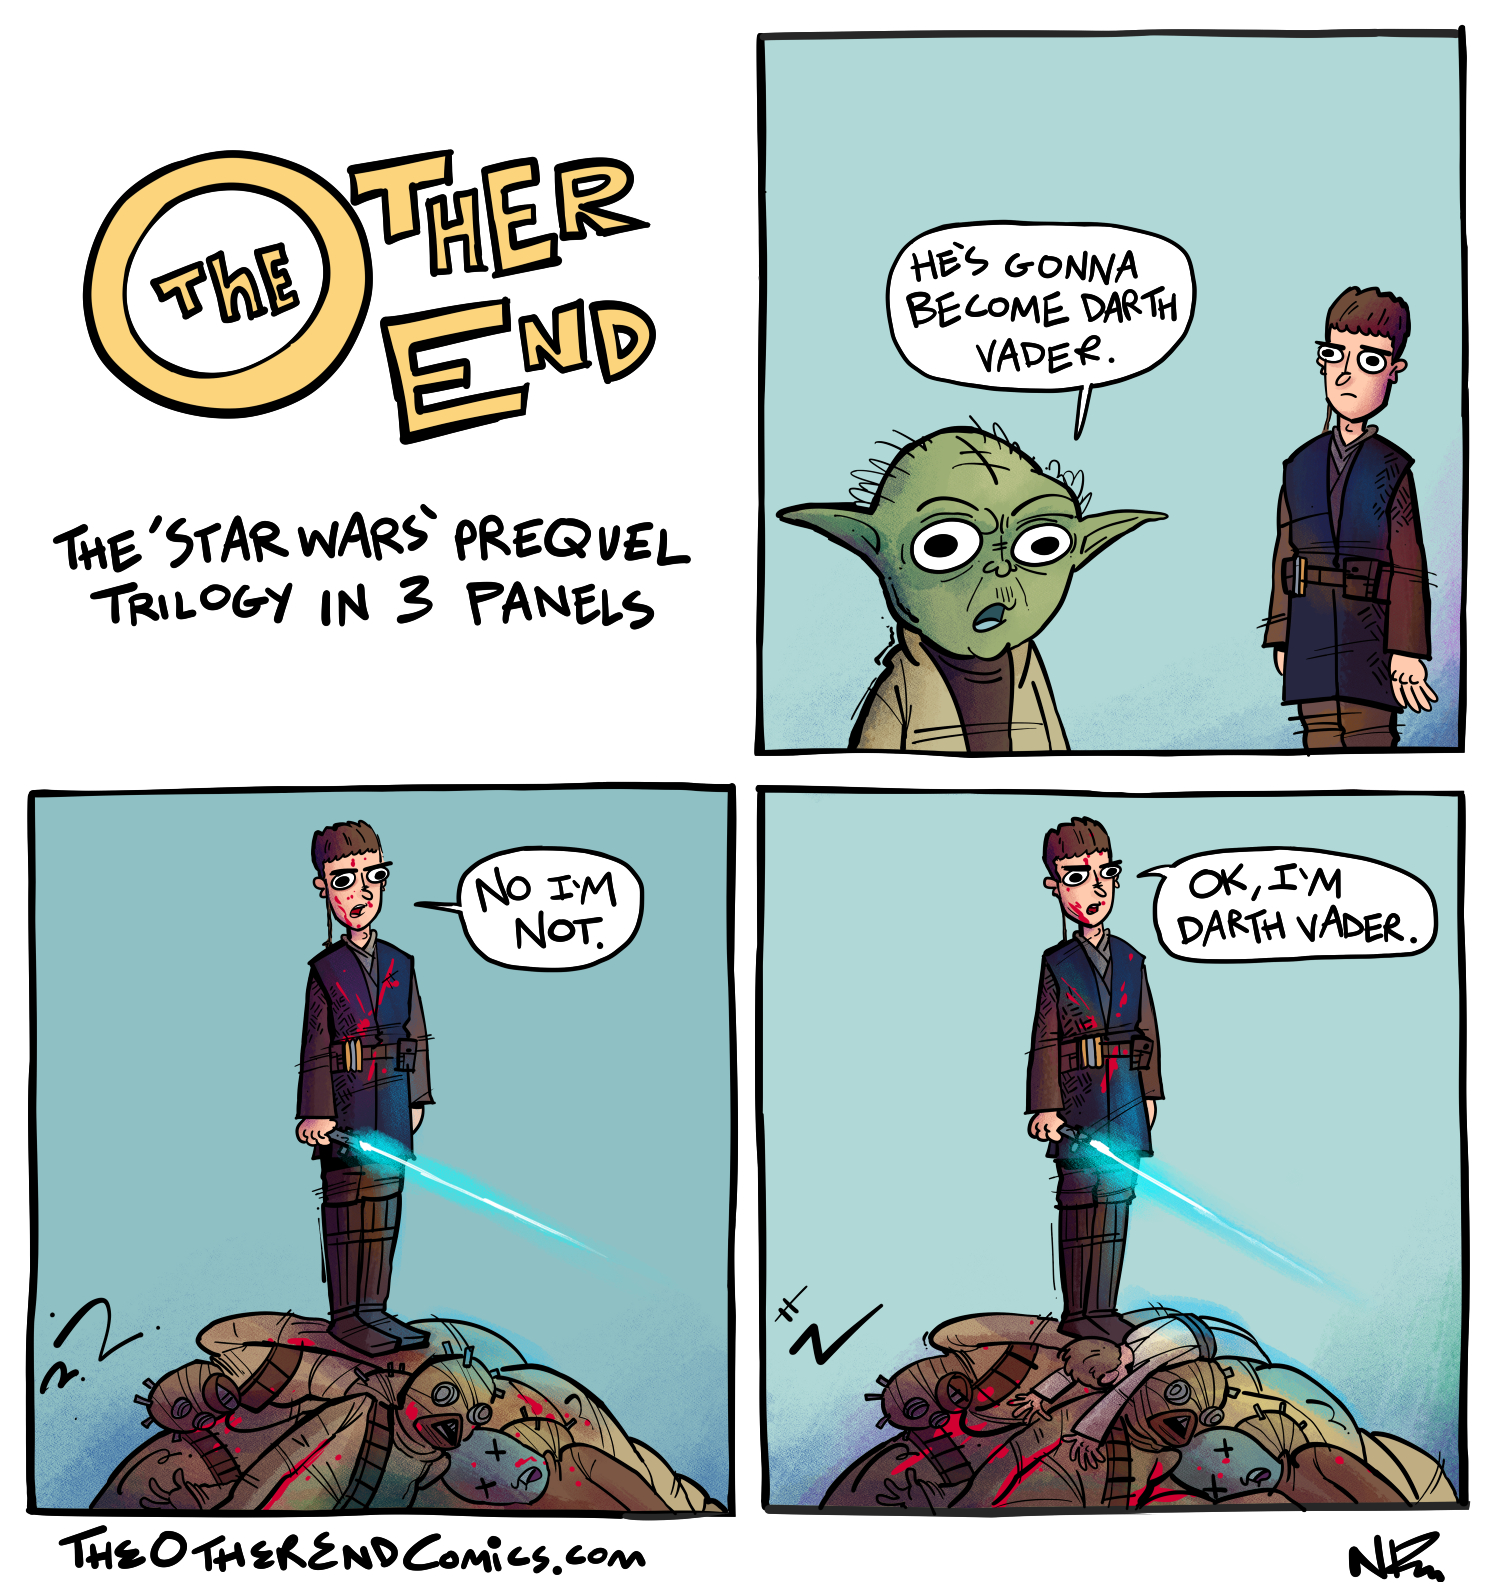 Yoda isn't doing cgi flips in every panel. This comic is so fake